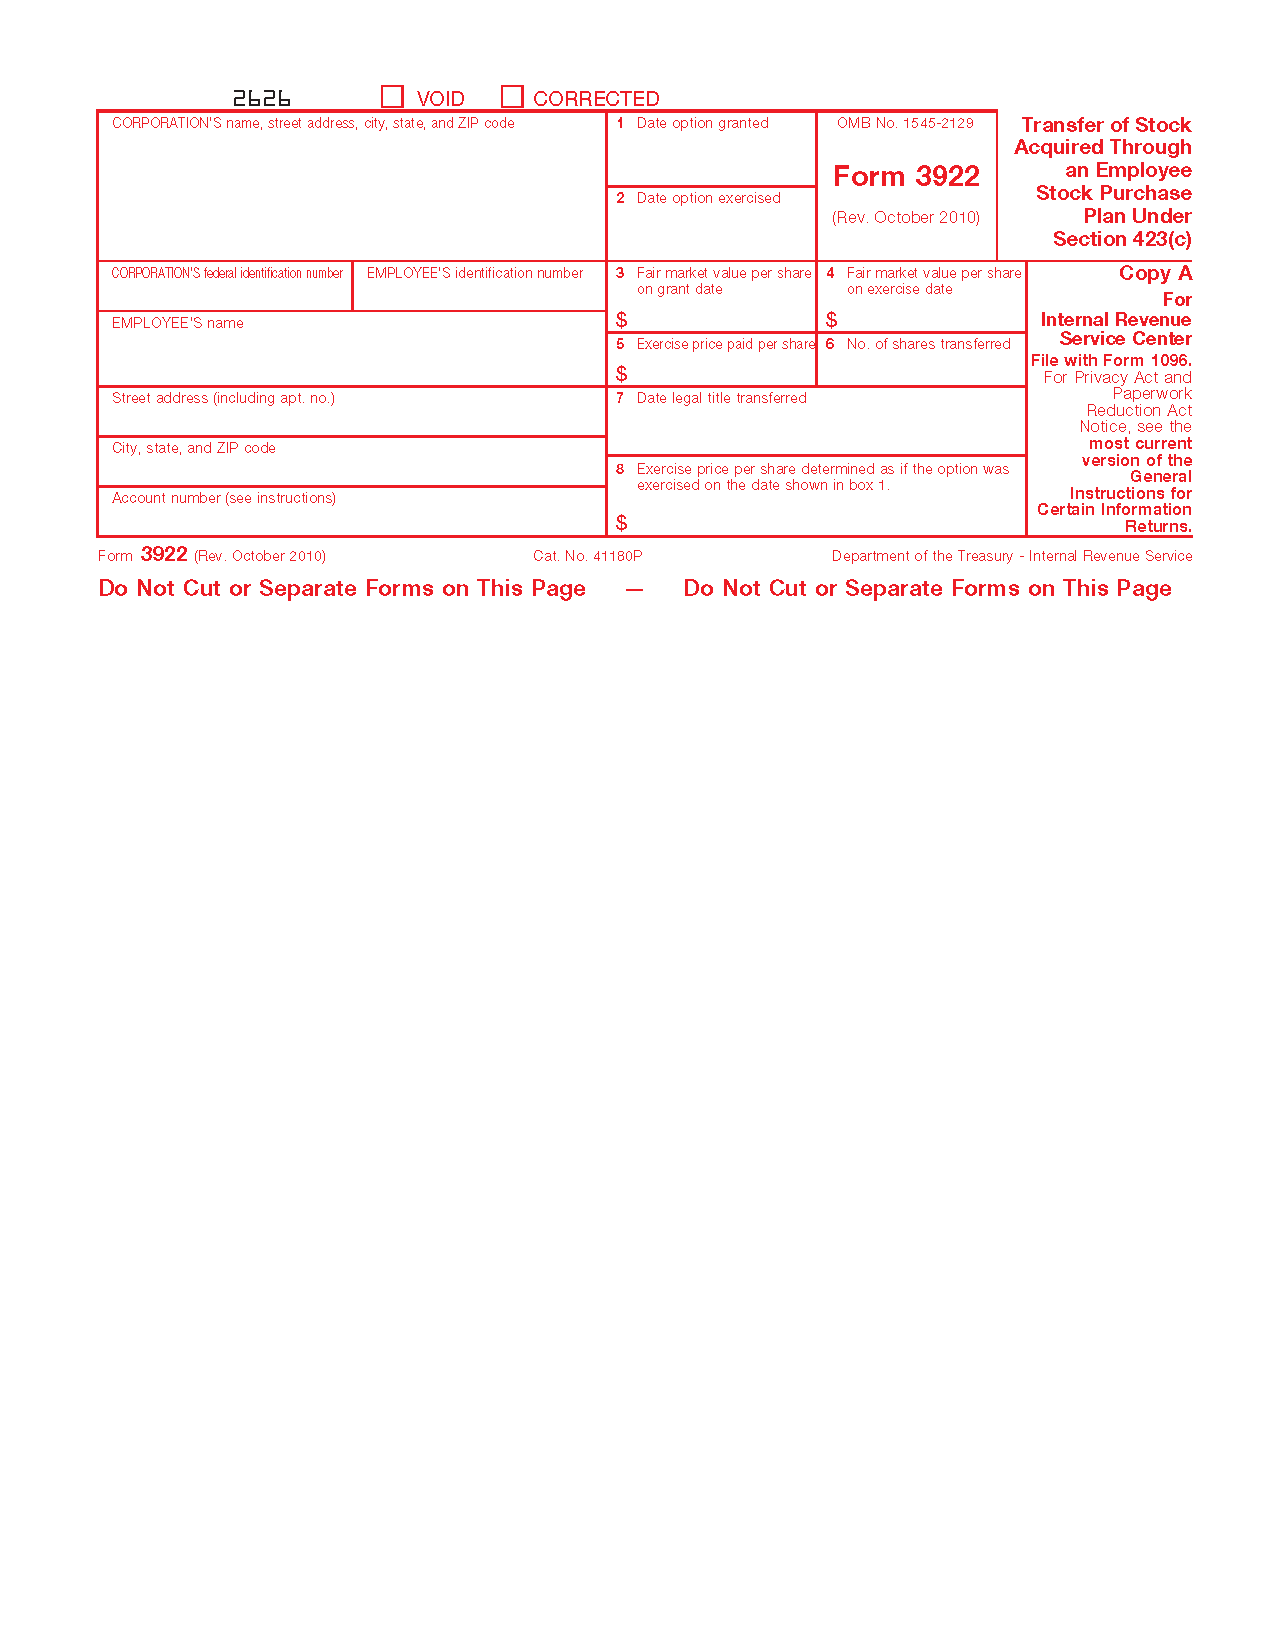 Form 3922 transfer of stock acquired through an employee stock view all 2011 irs tax forms falaconquin